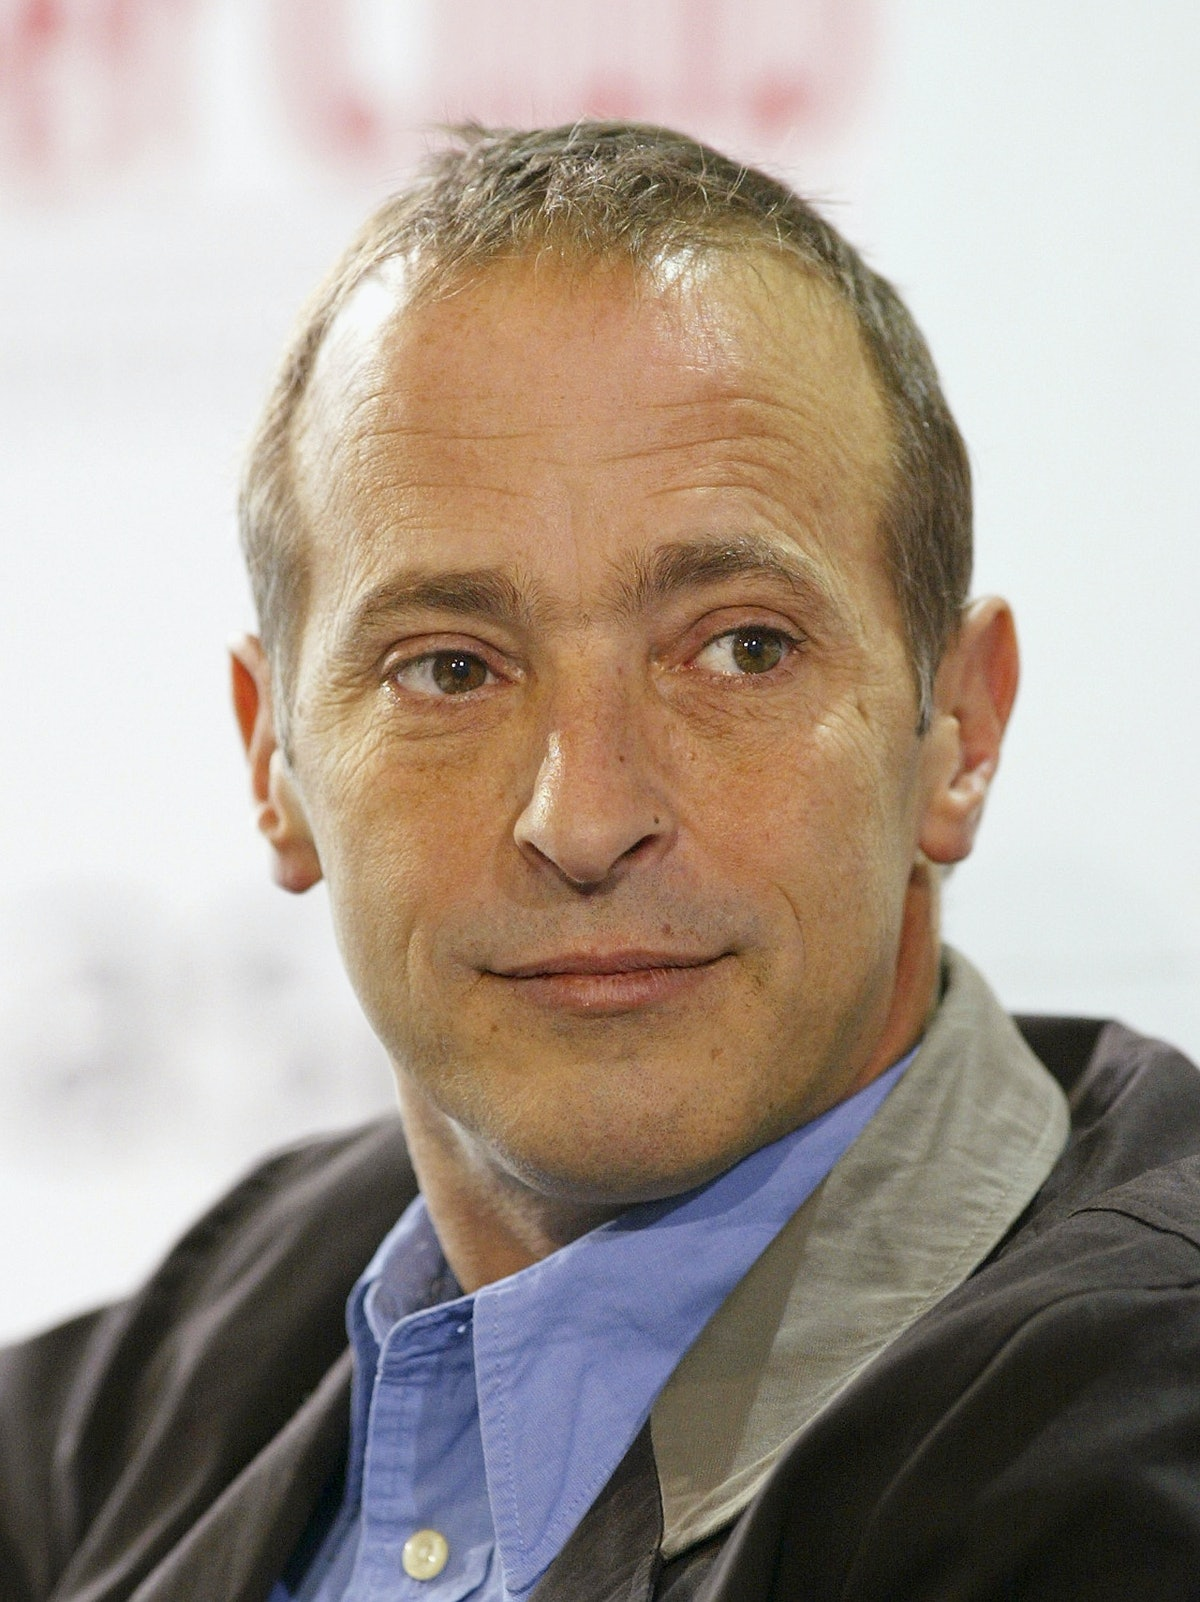 david sedaris essay learning french